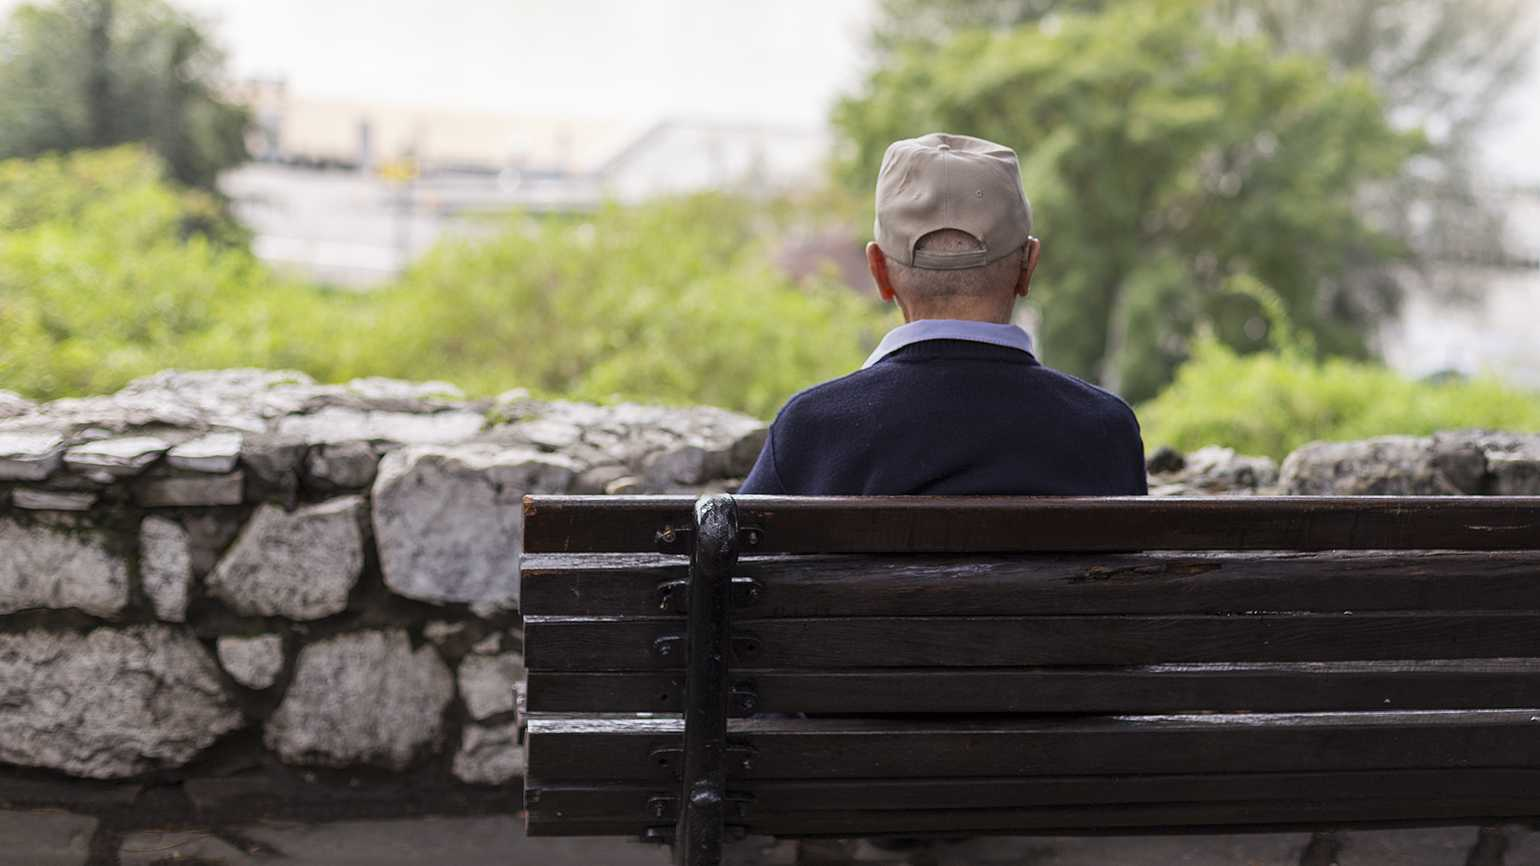 How to keep your routine and overcome loneliness